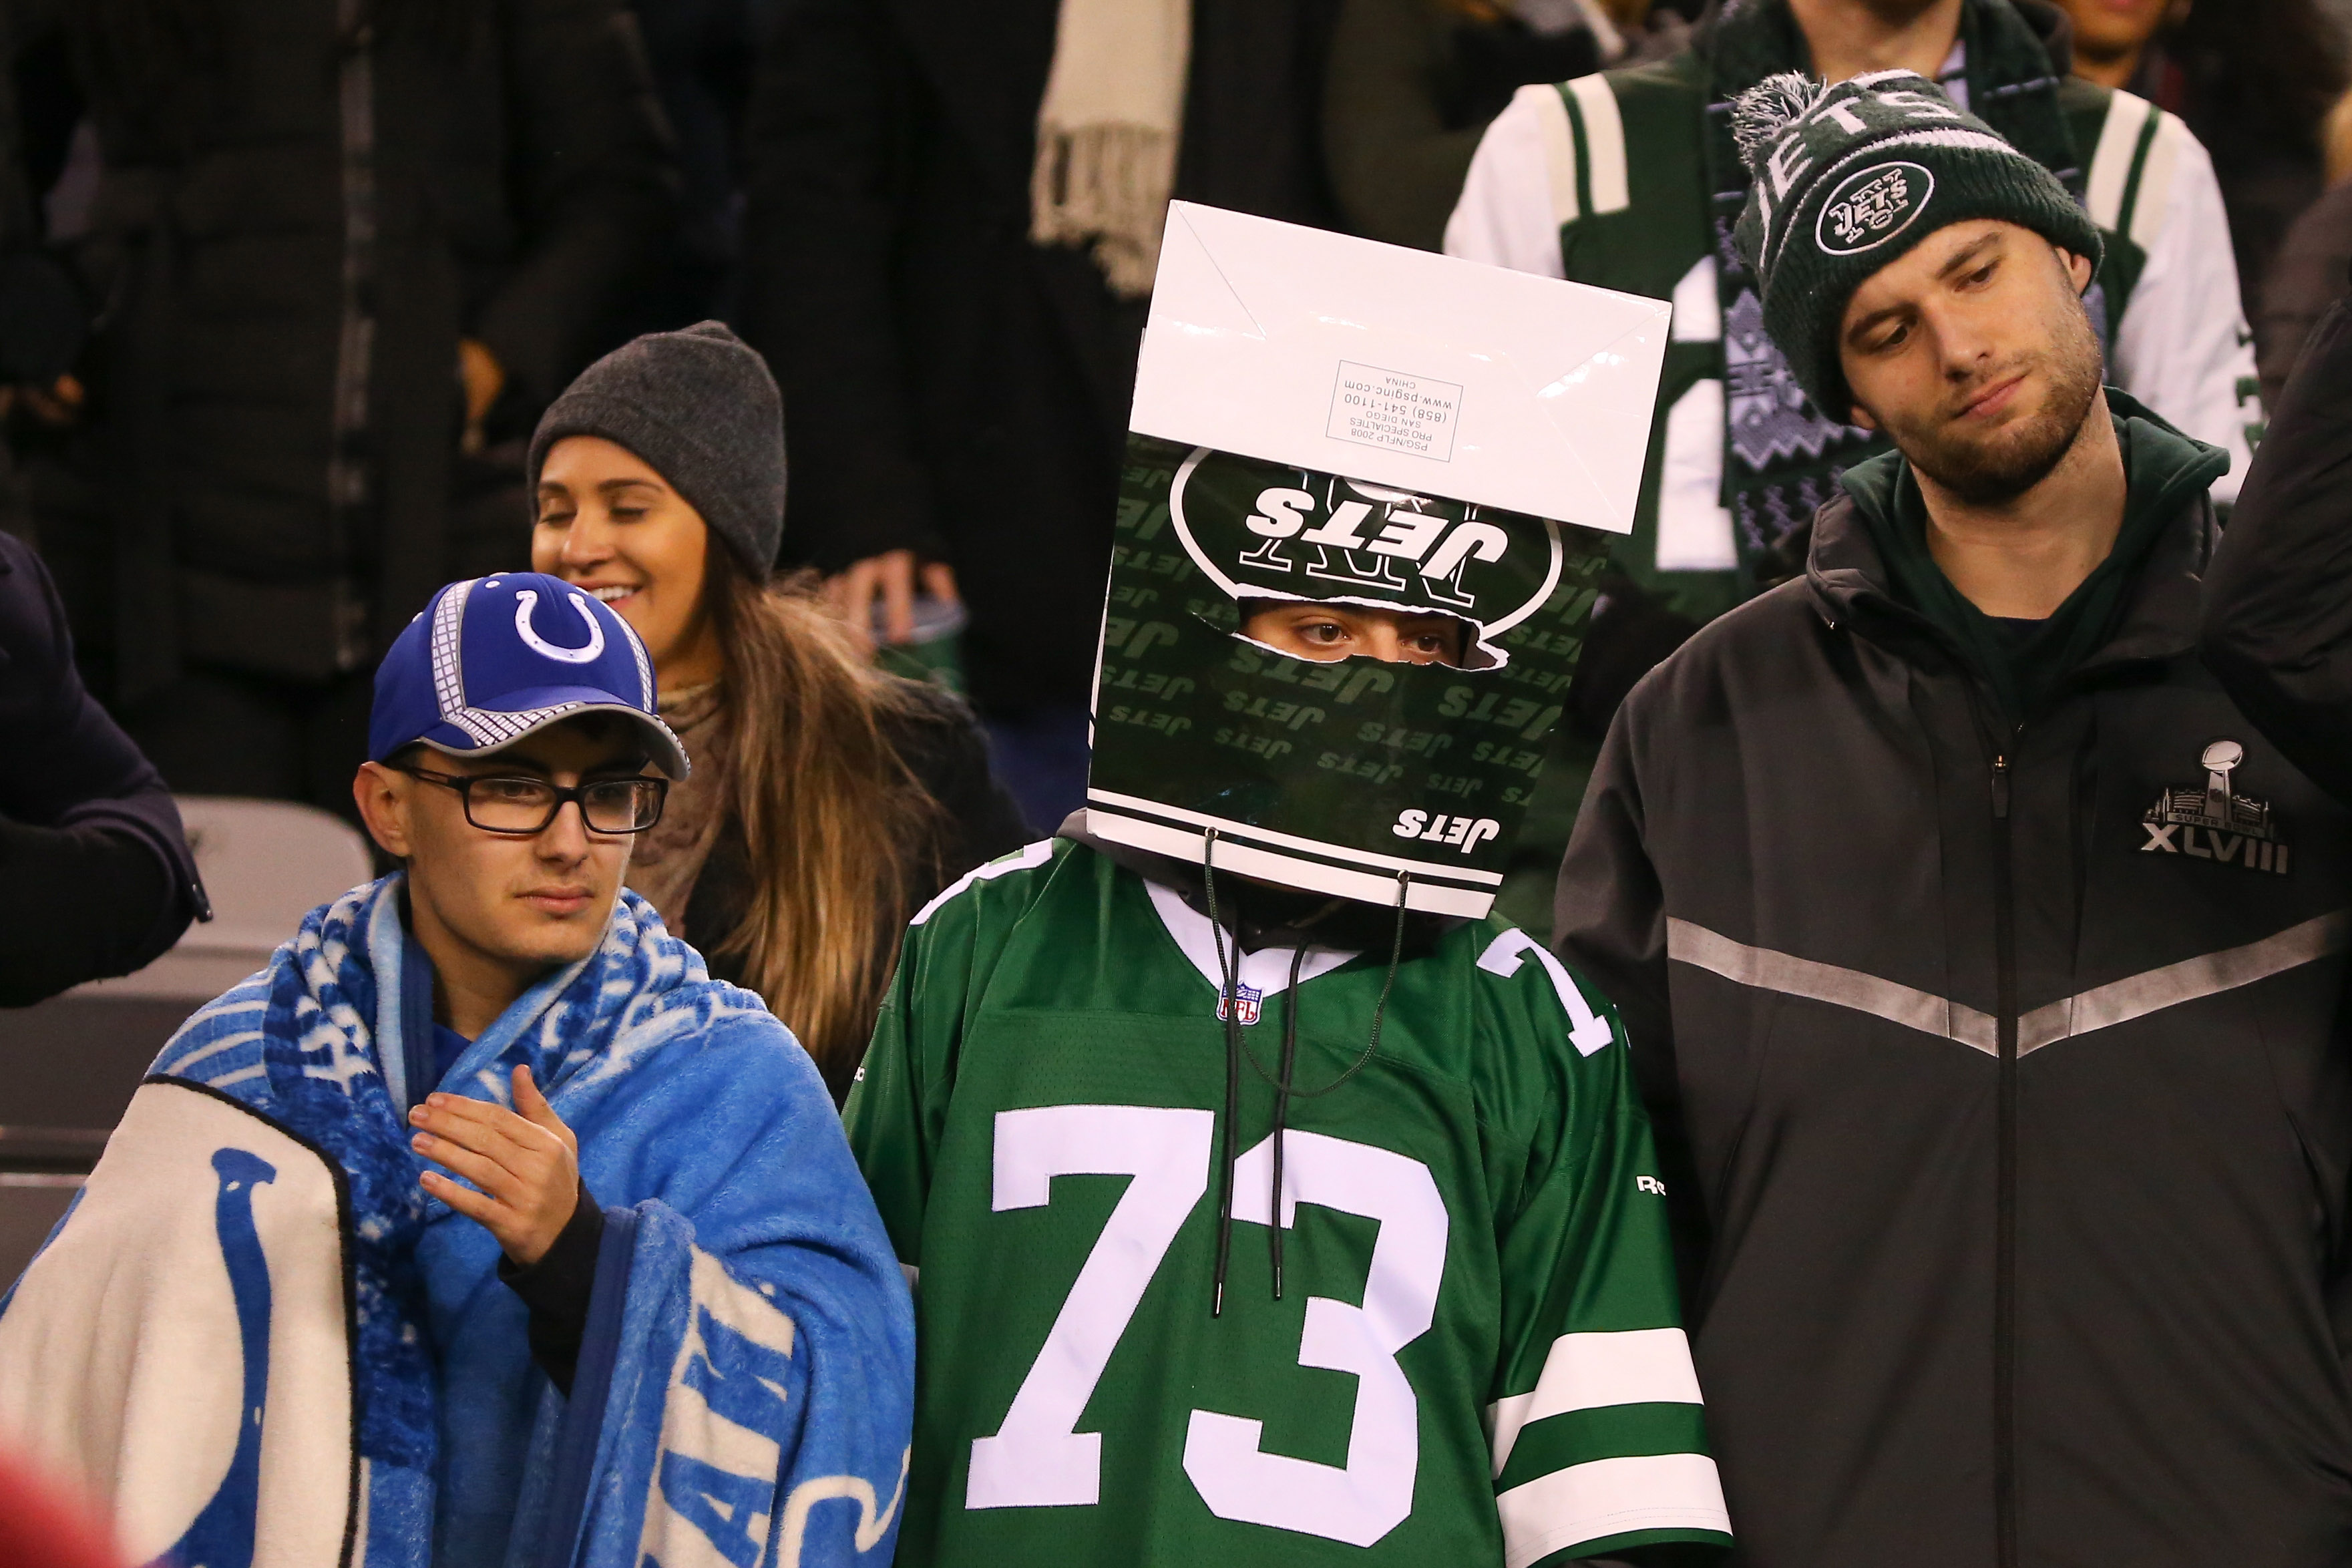 9728204-nfl-indianapolis-colts-at-new-york-jets